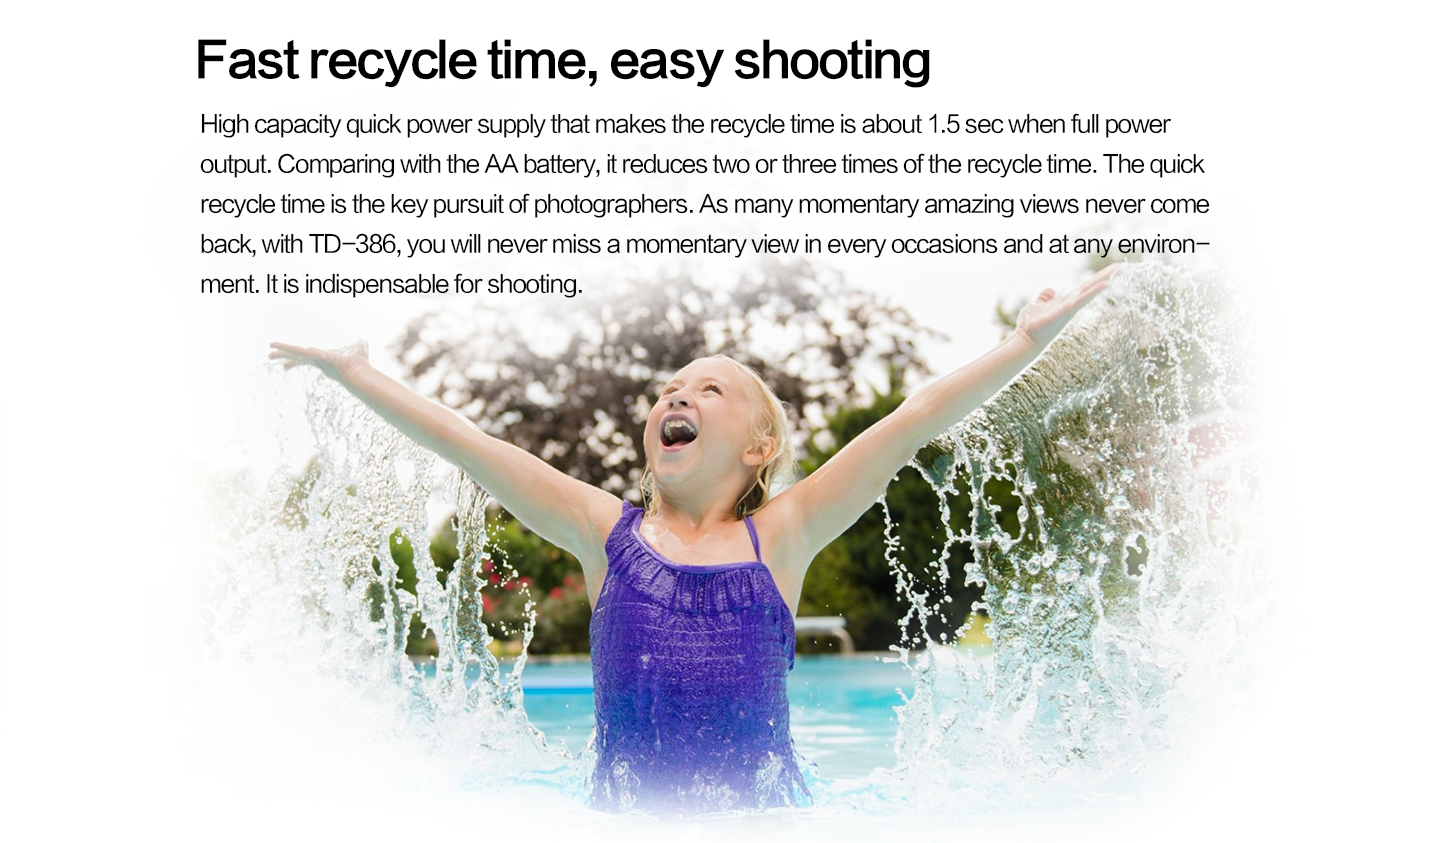 Fast recycle time, easy shooting